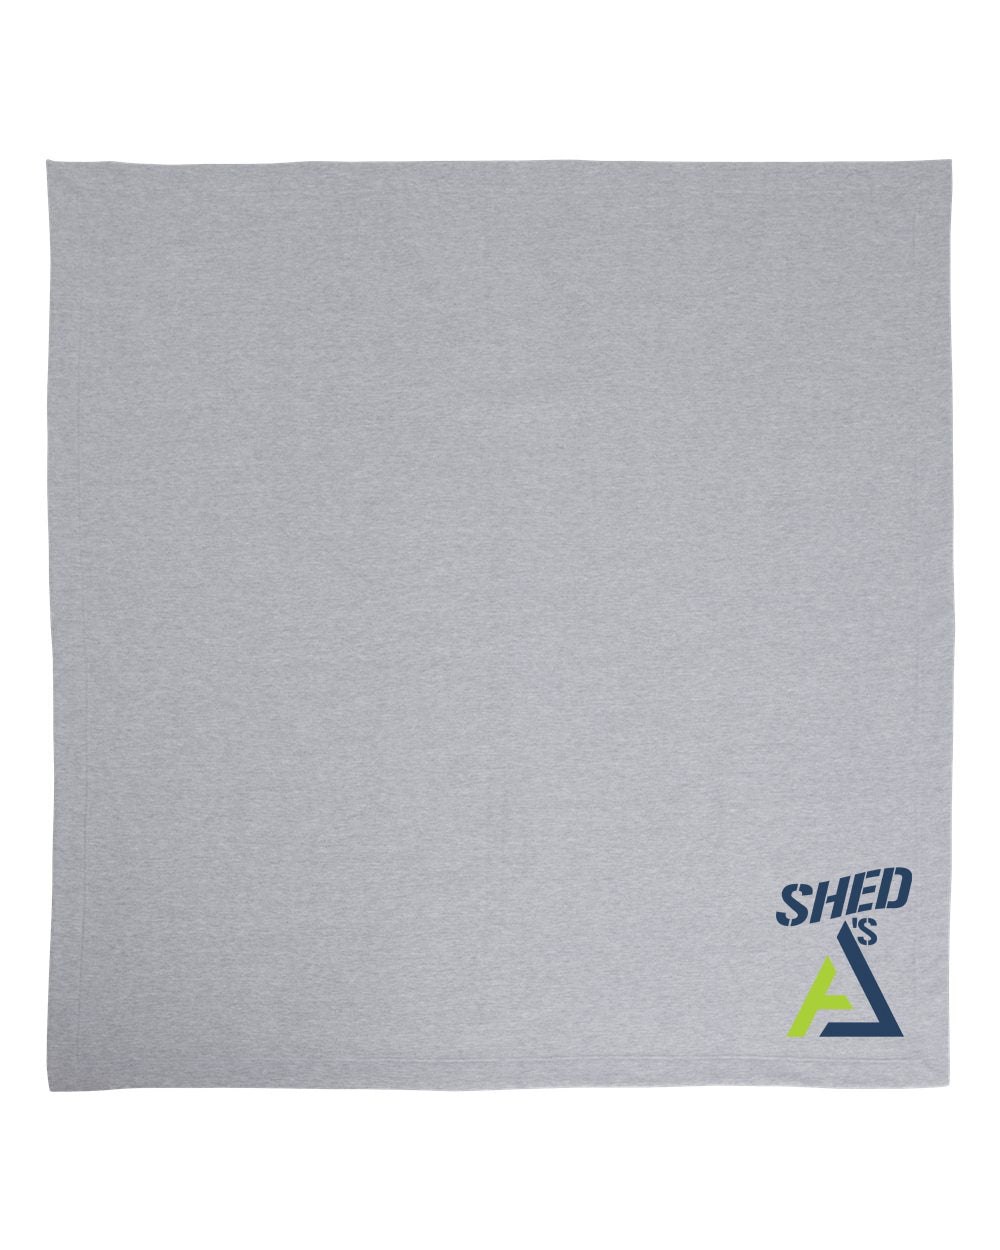 Shed A's Stadium Blanket